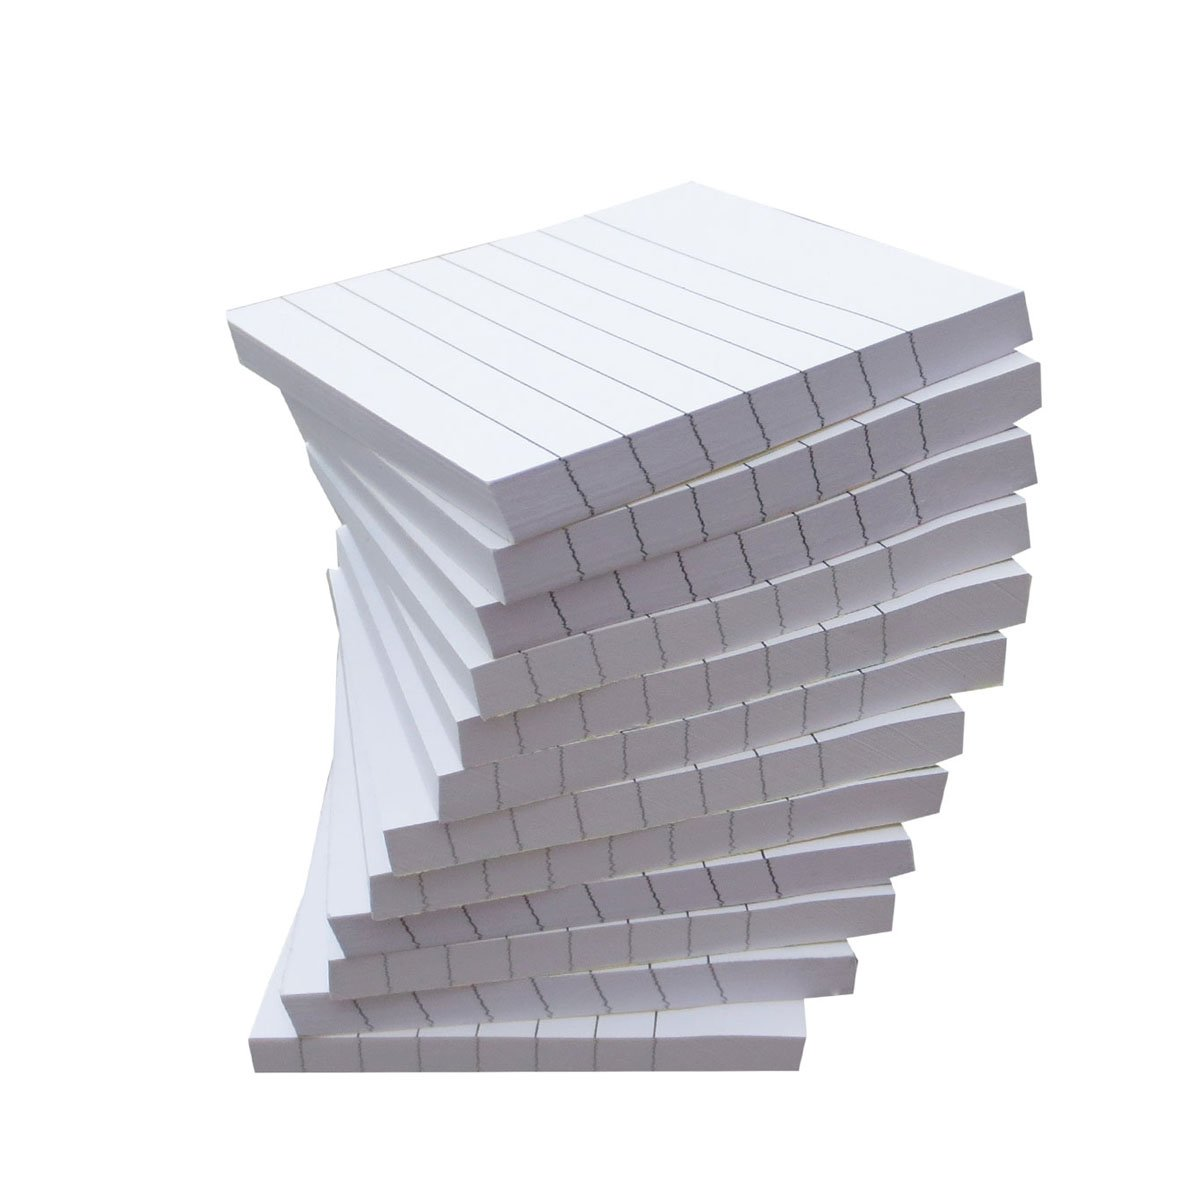 Creatiburg White Self-Stick Note Pads Lined 3x3 inches Sticky Notes White with Lines 12 Pads/Pack 100 Sheets/Pad, Easy Post Individually Wrapped Carton Packaging, School and Office Supplies